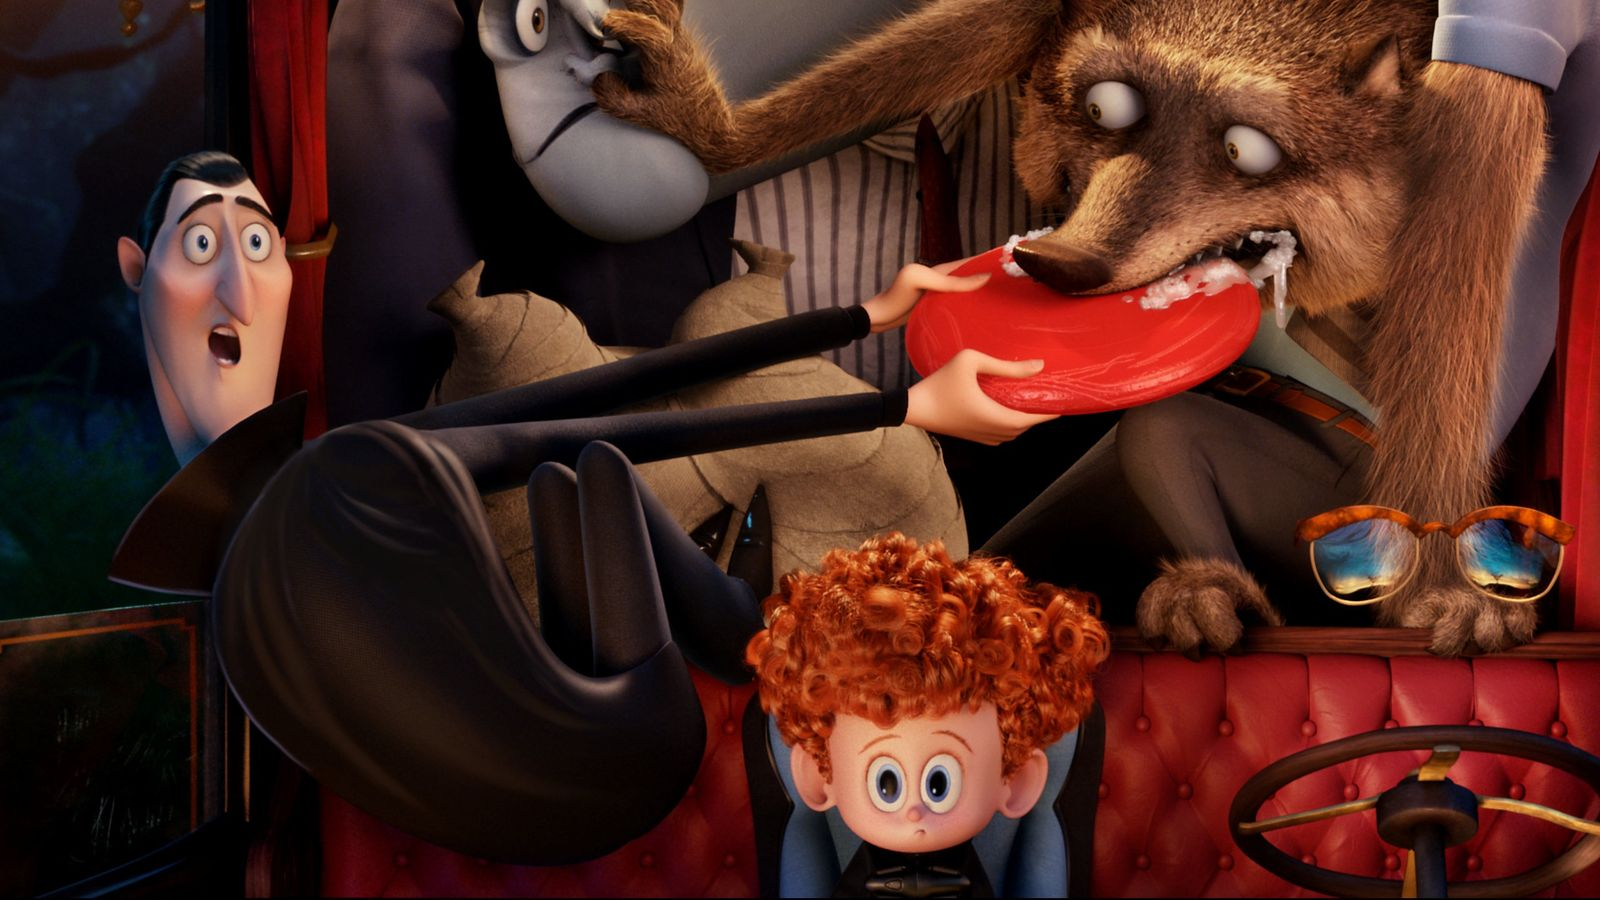 Fucking cartoon monster wallpaper in hd 3d hentai photo